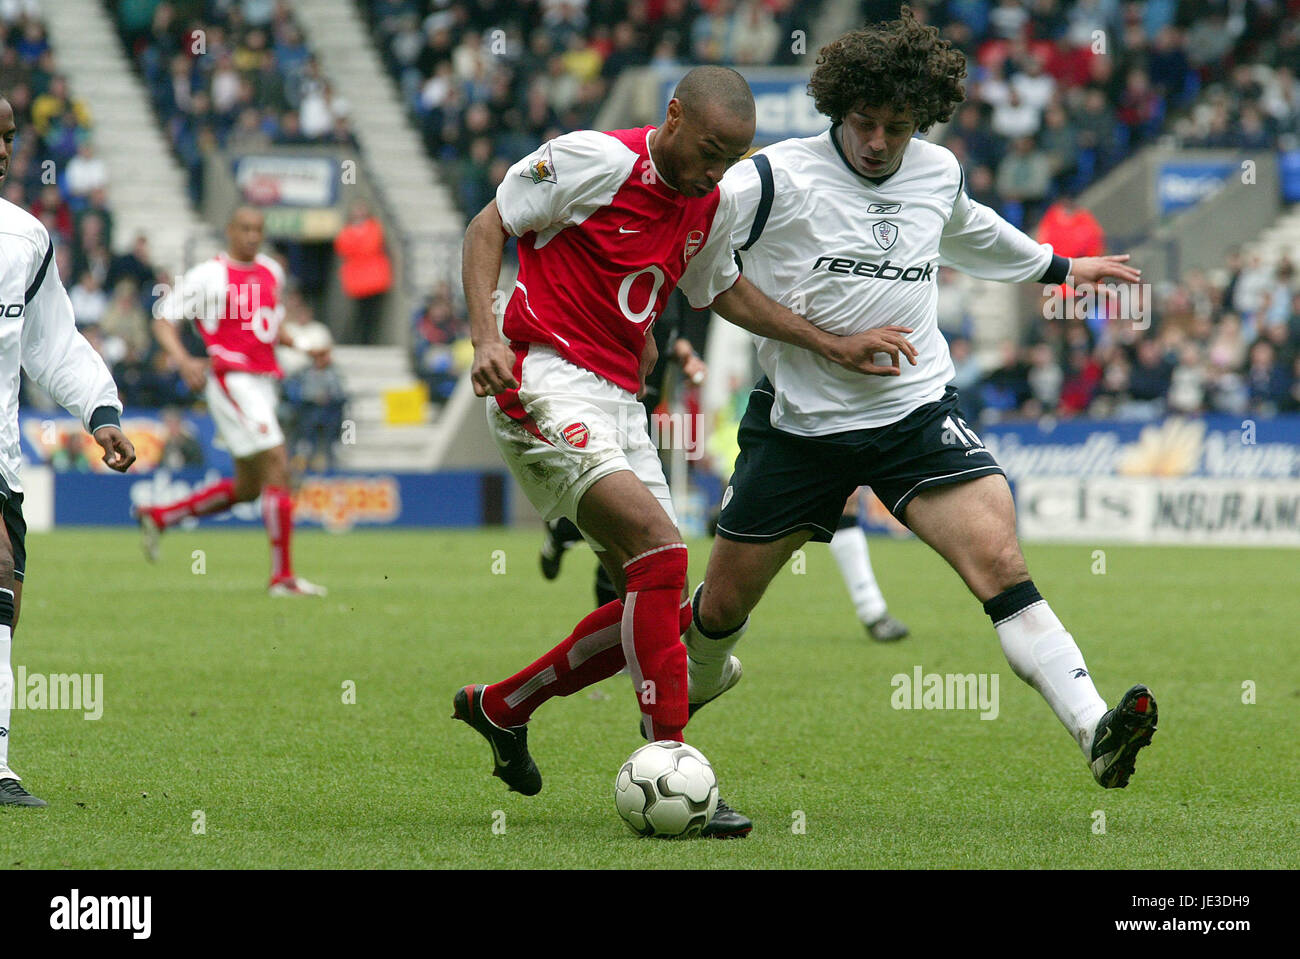 Restaurar Térmico venganza  THIERRY HENRY & IVAN CAMPO BOLTON WANDERERS V ARSENAL THE REEBOK Stock  Photo - Alamy